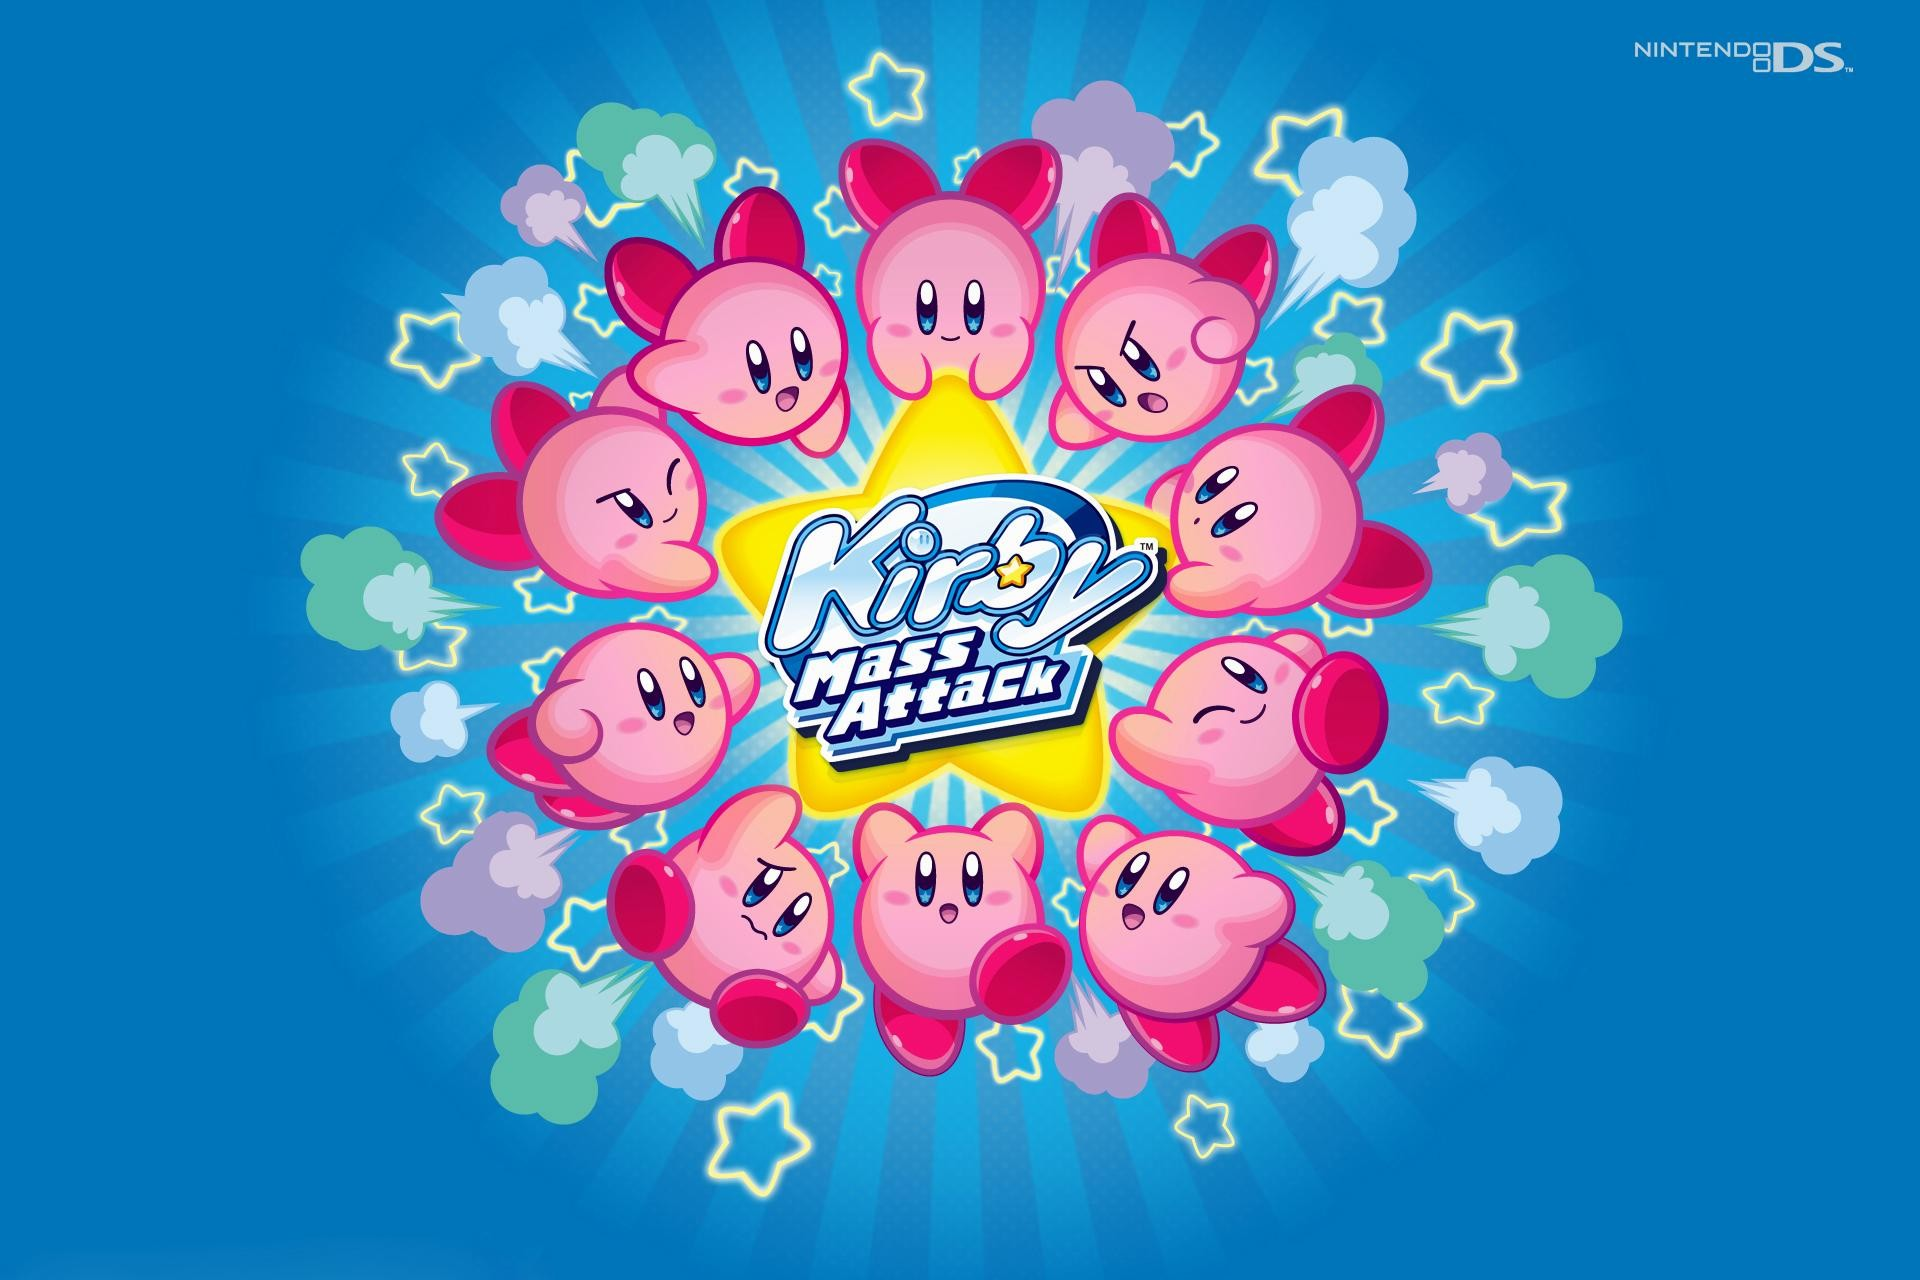 Kirby-Backgrounds-Photos-Download